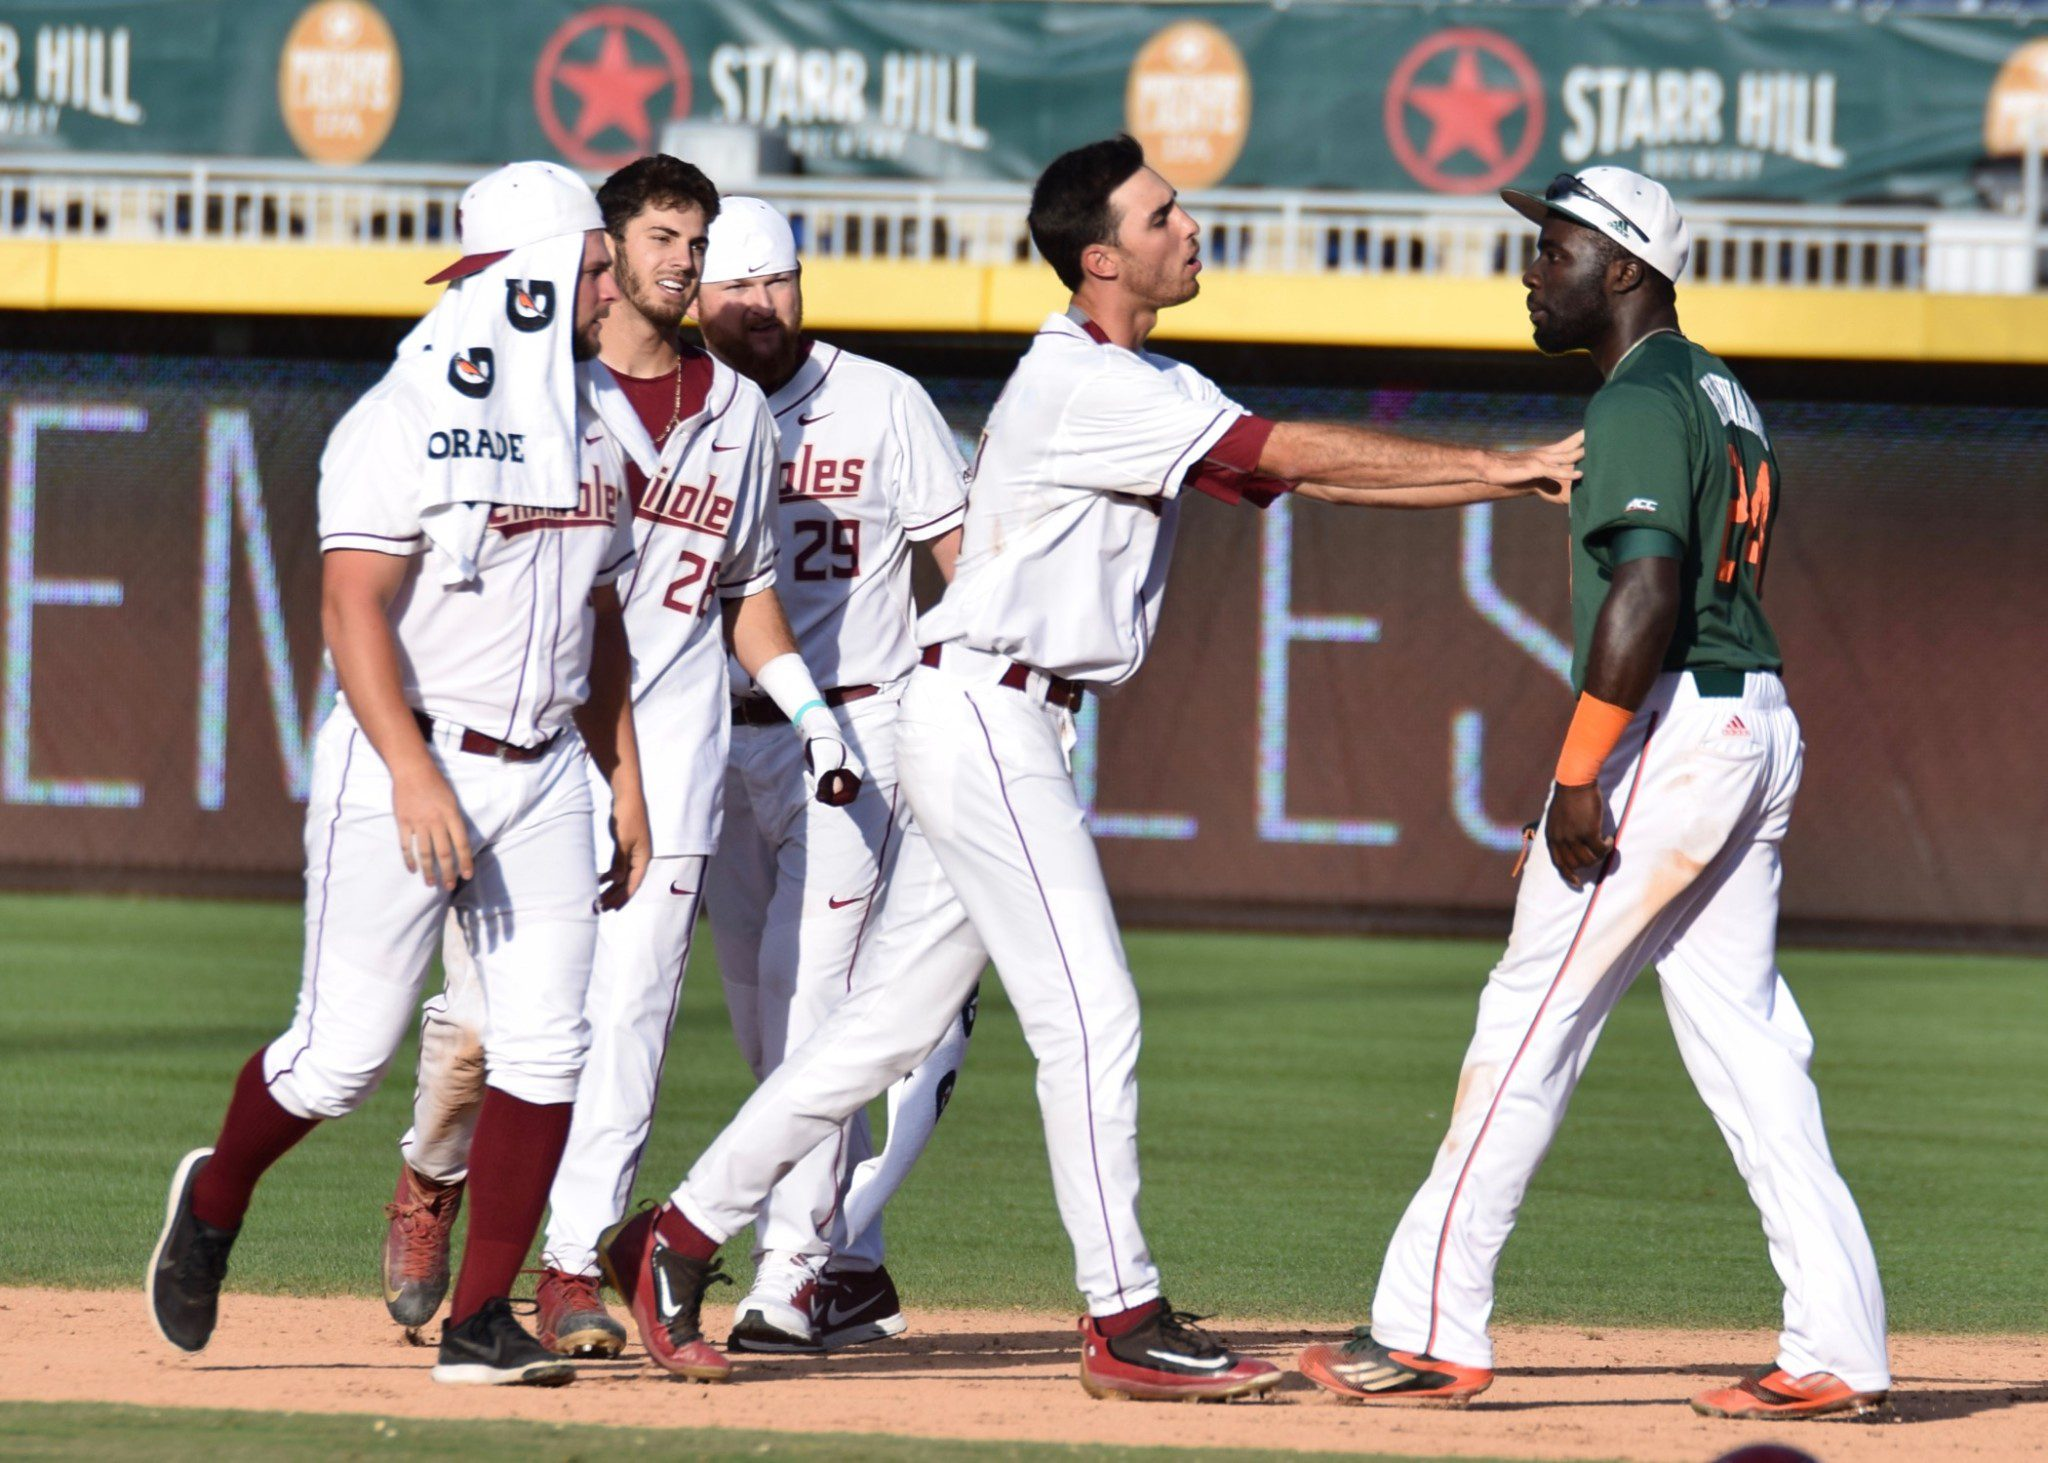 Miami's Jacob Heyward exchanges words with some Florida State players (Aaron Fitt)